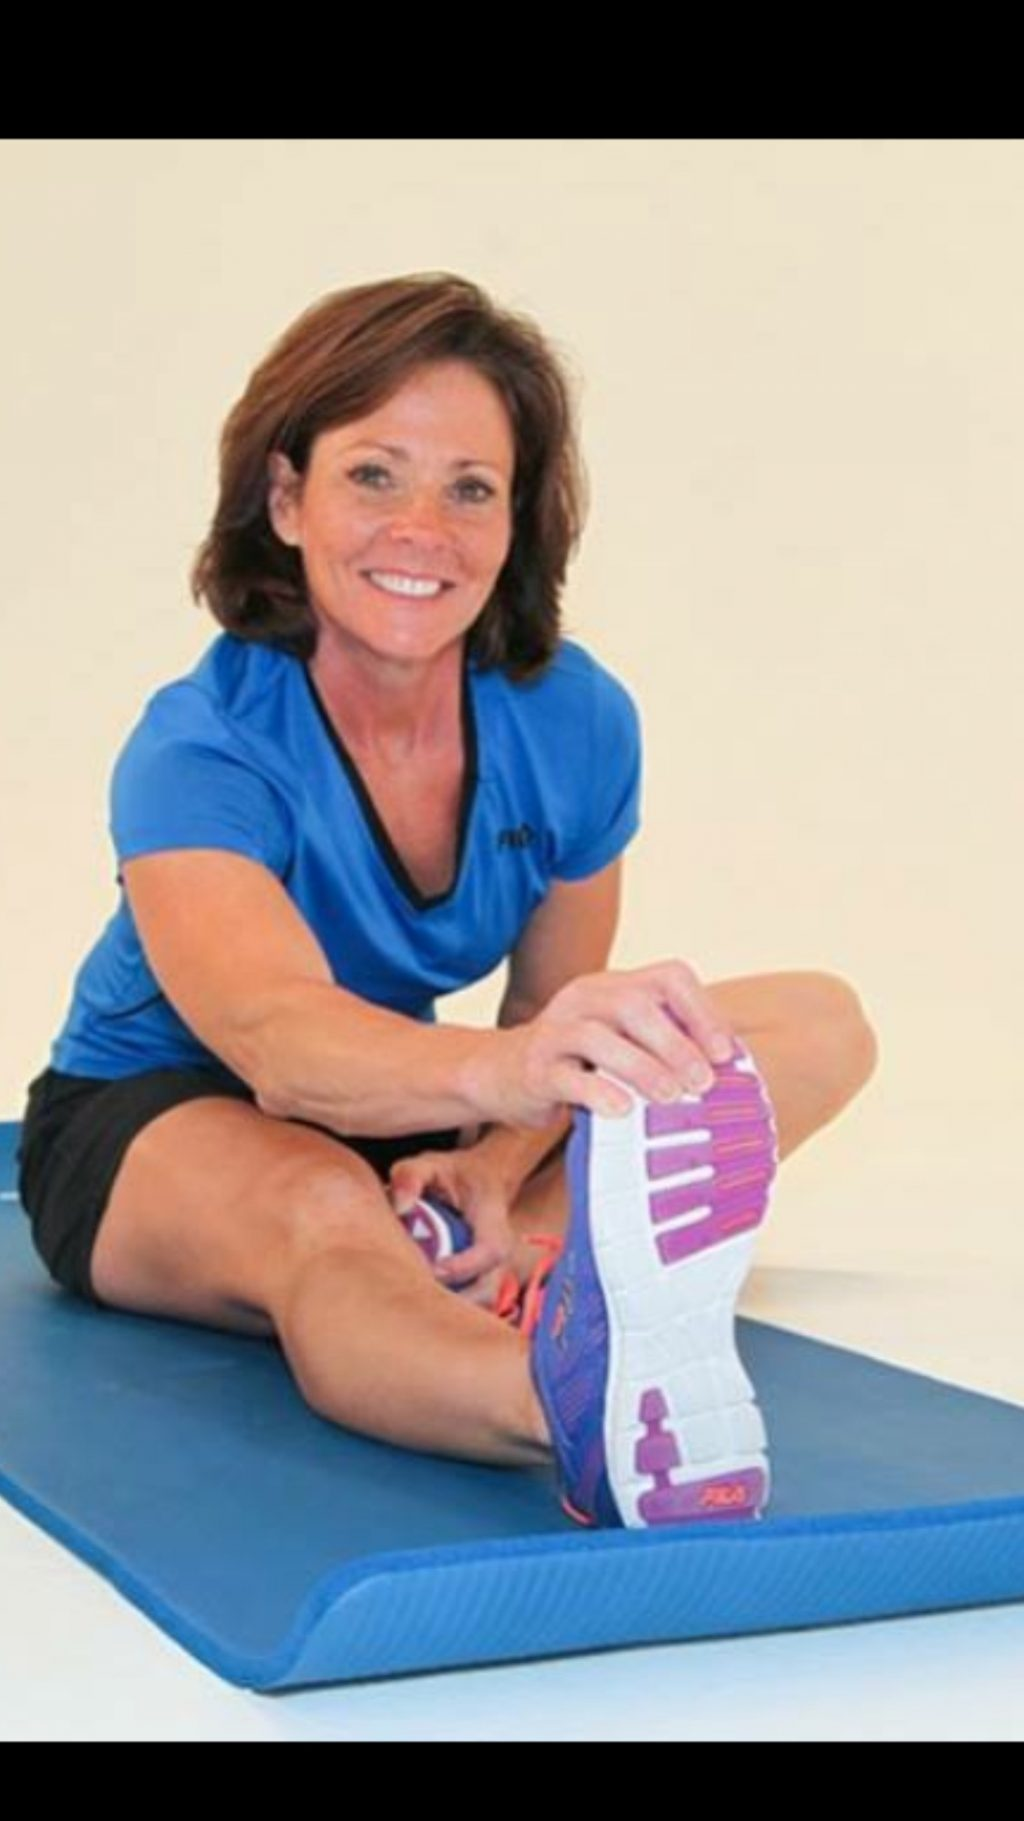 Personal Trainer Wildwood, Missouri - Whitney Tegethoff